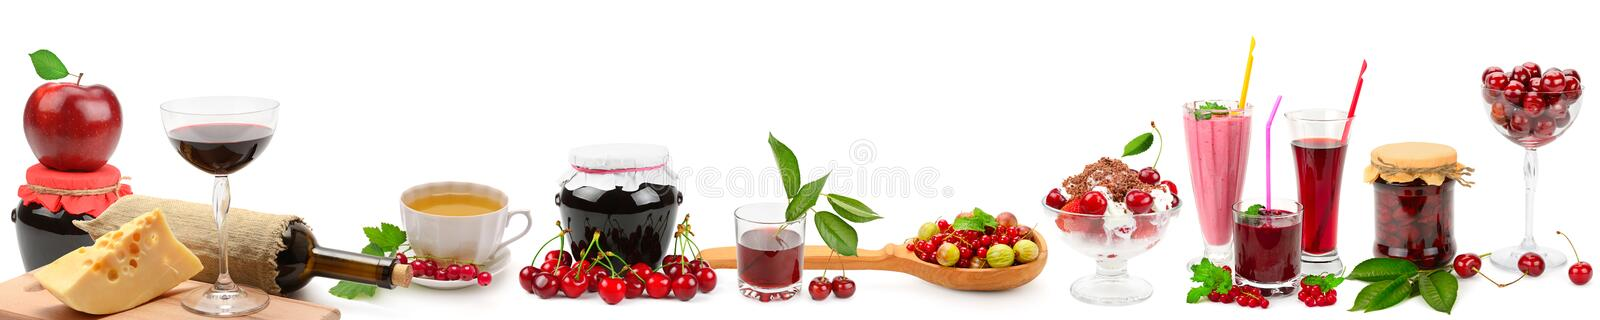 Panoramic wide collage for skinali. Fruit, drinks, healthy food. royalty free stock image